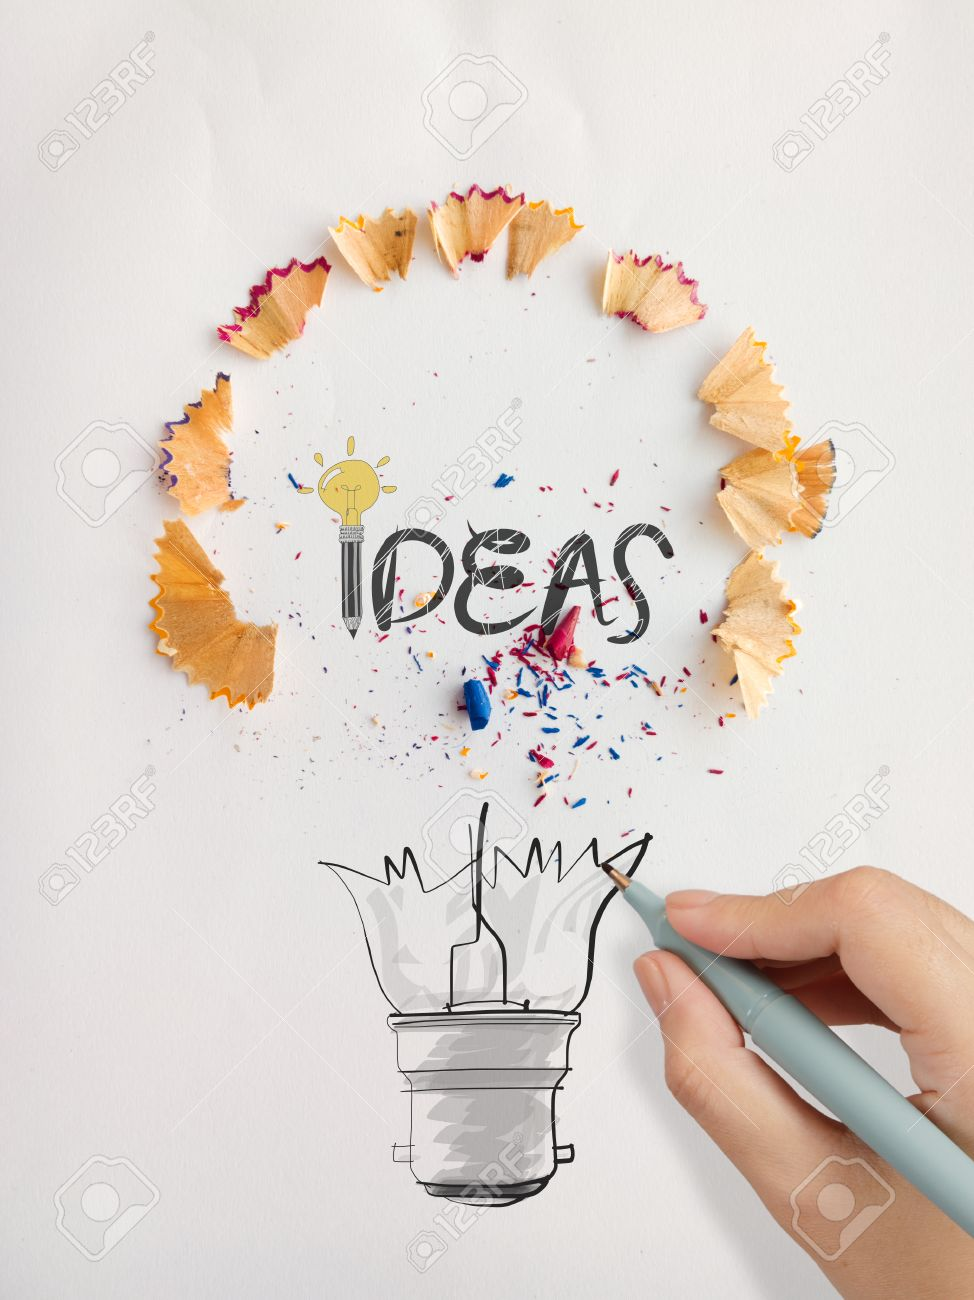 hand drawn light bulb word design idea with pencil saw dust on paper as creative concept - Design Idea